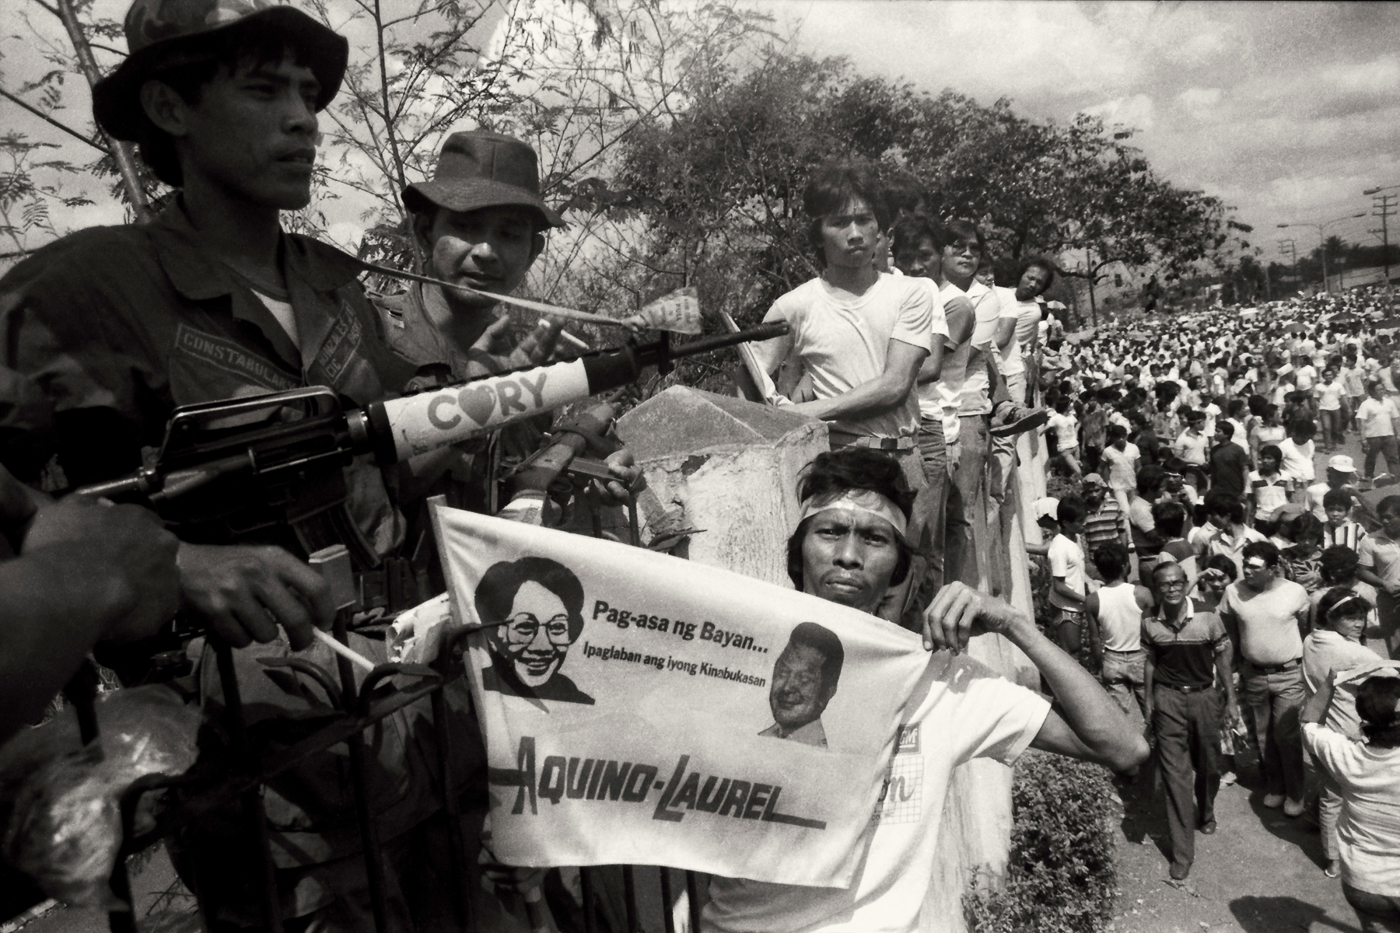 CIVILIAN-BACKED MILITARY REVOLT. Filipinos oust the Marcos dictatorship on February 25, 1986. File photo by Romeo Mariano